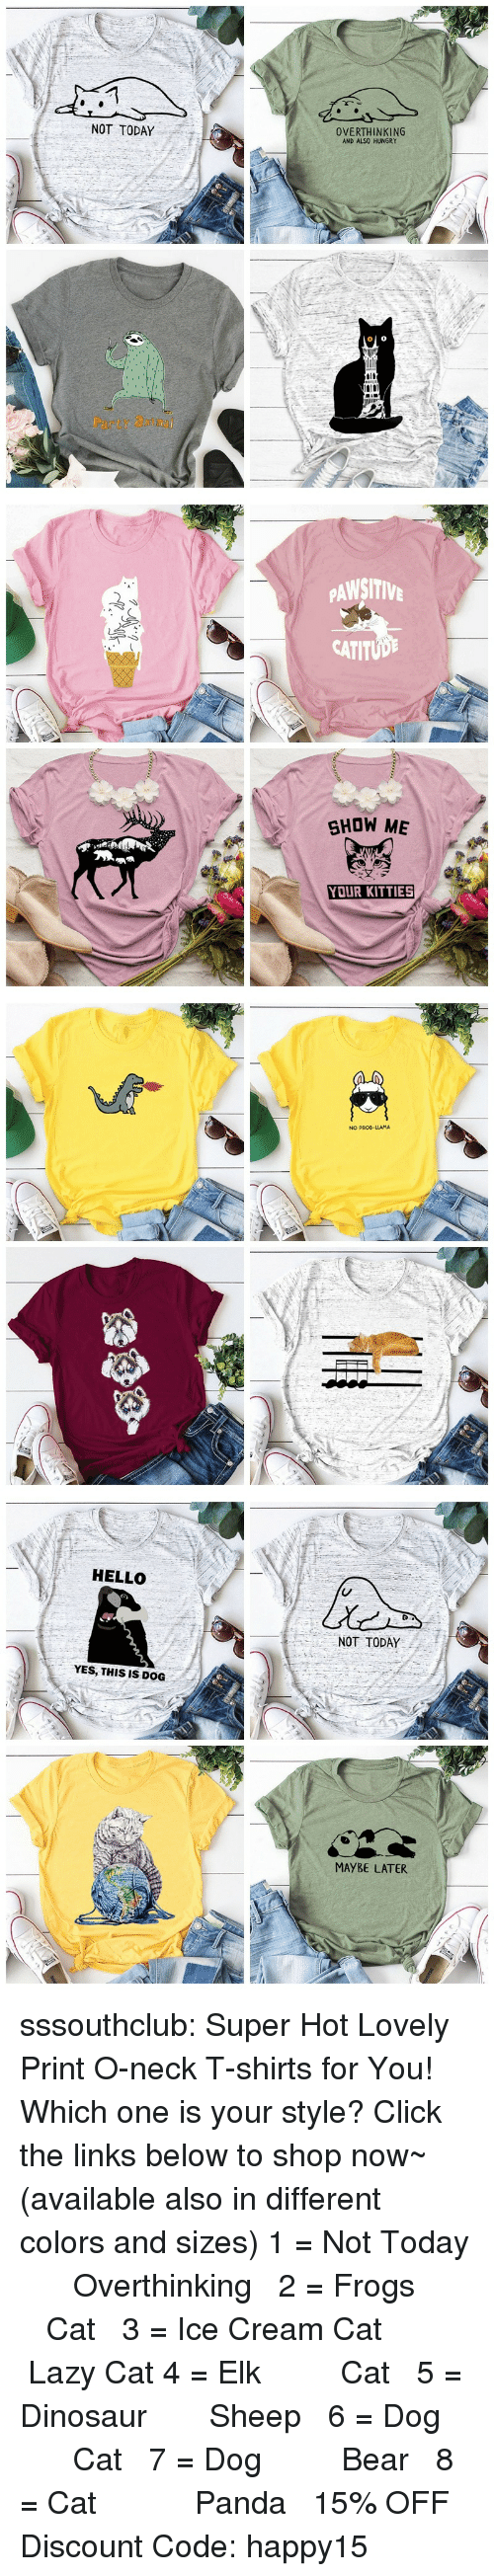 links: NOT TODAY  OVERTHINKING  AND ALSO HUNGRY  Party atm   PAWSITIV  CATITUD  SHOW ME  YOUR KITTIES   NO PROD-LLAMA   HELLO  NOT TODAY  YES, THIS IS DOG  MAYBE LATER sssouthclub: Super Hot Lovely Print O-neck T-shirts for You! Which one is your style? Click the links below to shop now~ (available also in different colors and sizes) 1 = Not Today  ☆★  Overthinking  2 = Frogs   ☆★  Cat  3 = Ice Cream Cat  ☆★  Lazy Cat  4 = Elk   ☆★  Cat  5 = Dinosaur  ☆★  Sheep  6 = Dog   ☆★  Cat  7 = Dog   ☆★  Bear  8 = Cat    ☆★  Panda  15% OFF Discount Code: happy15